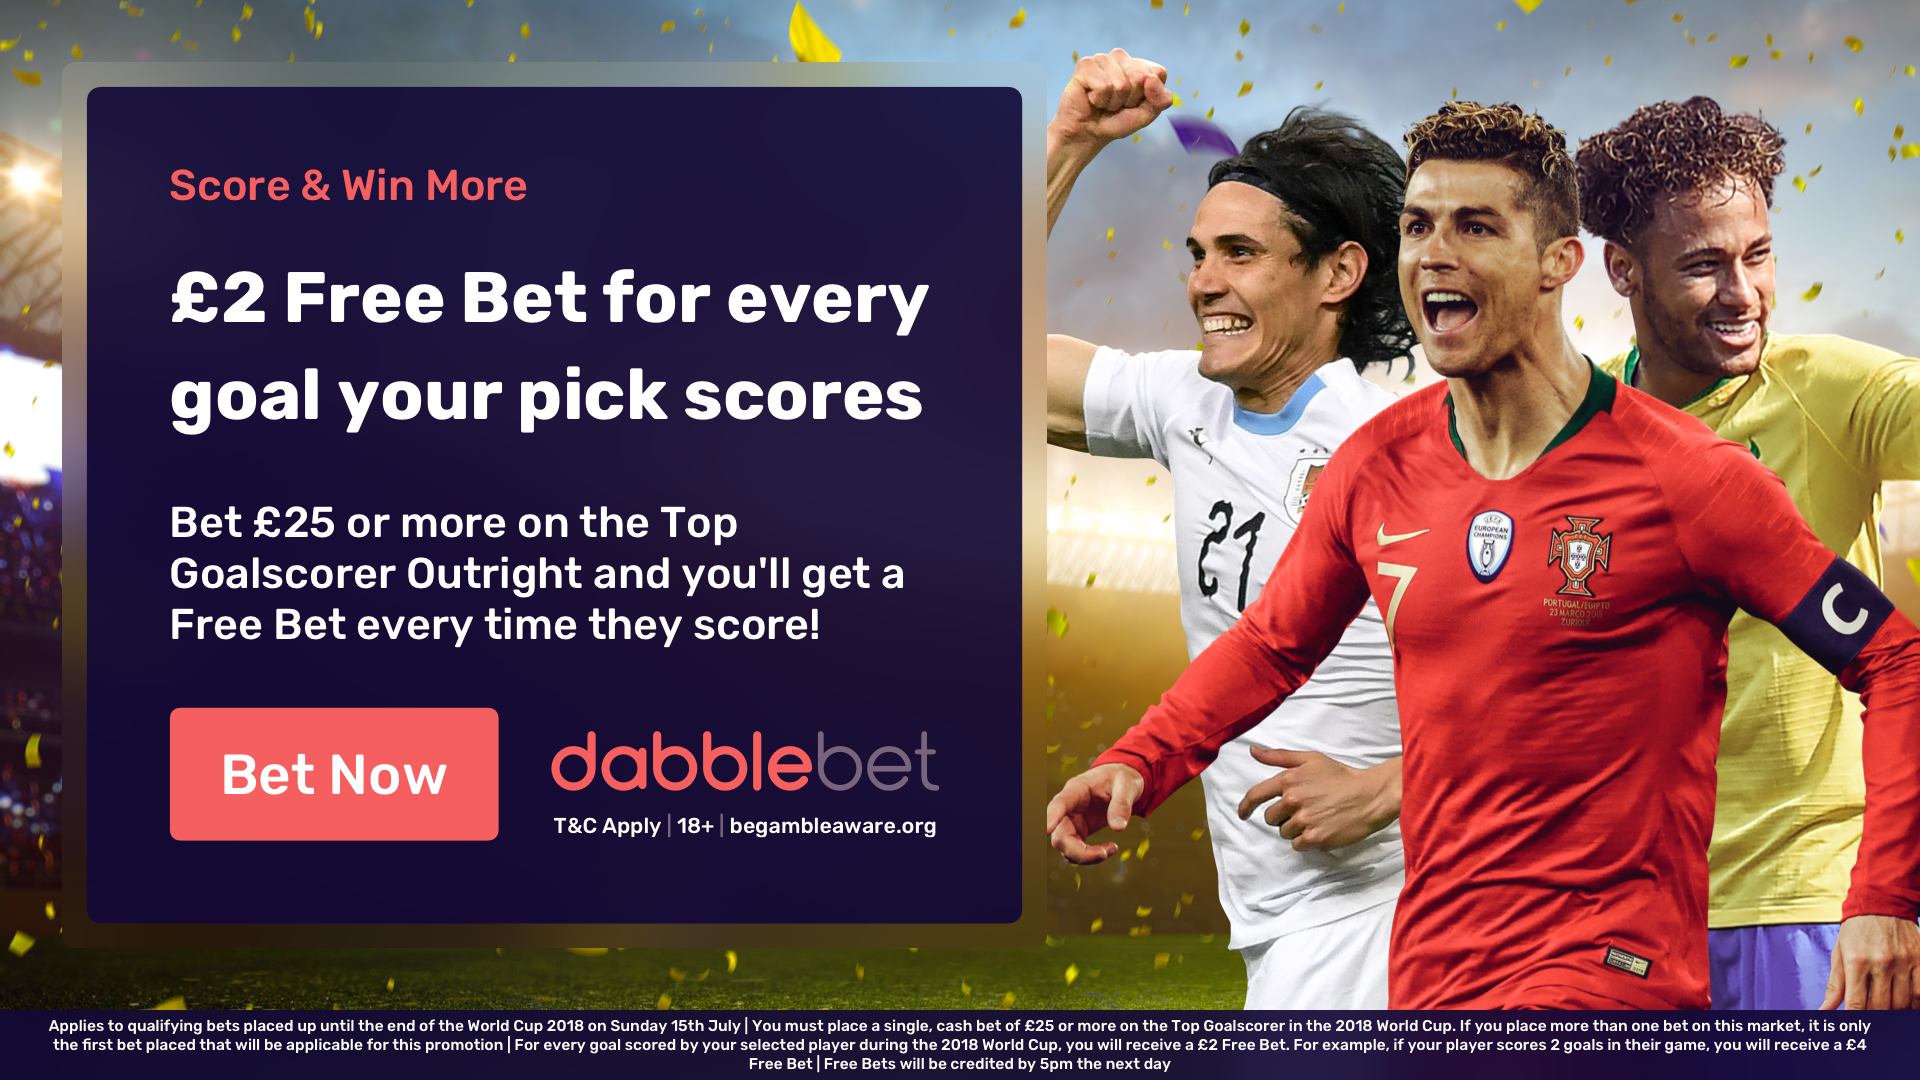 dabblebet score more win more offer in article